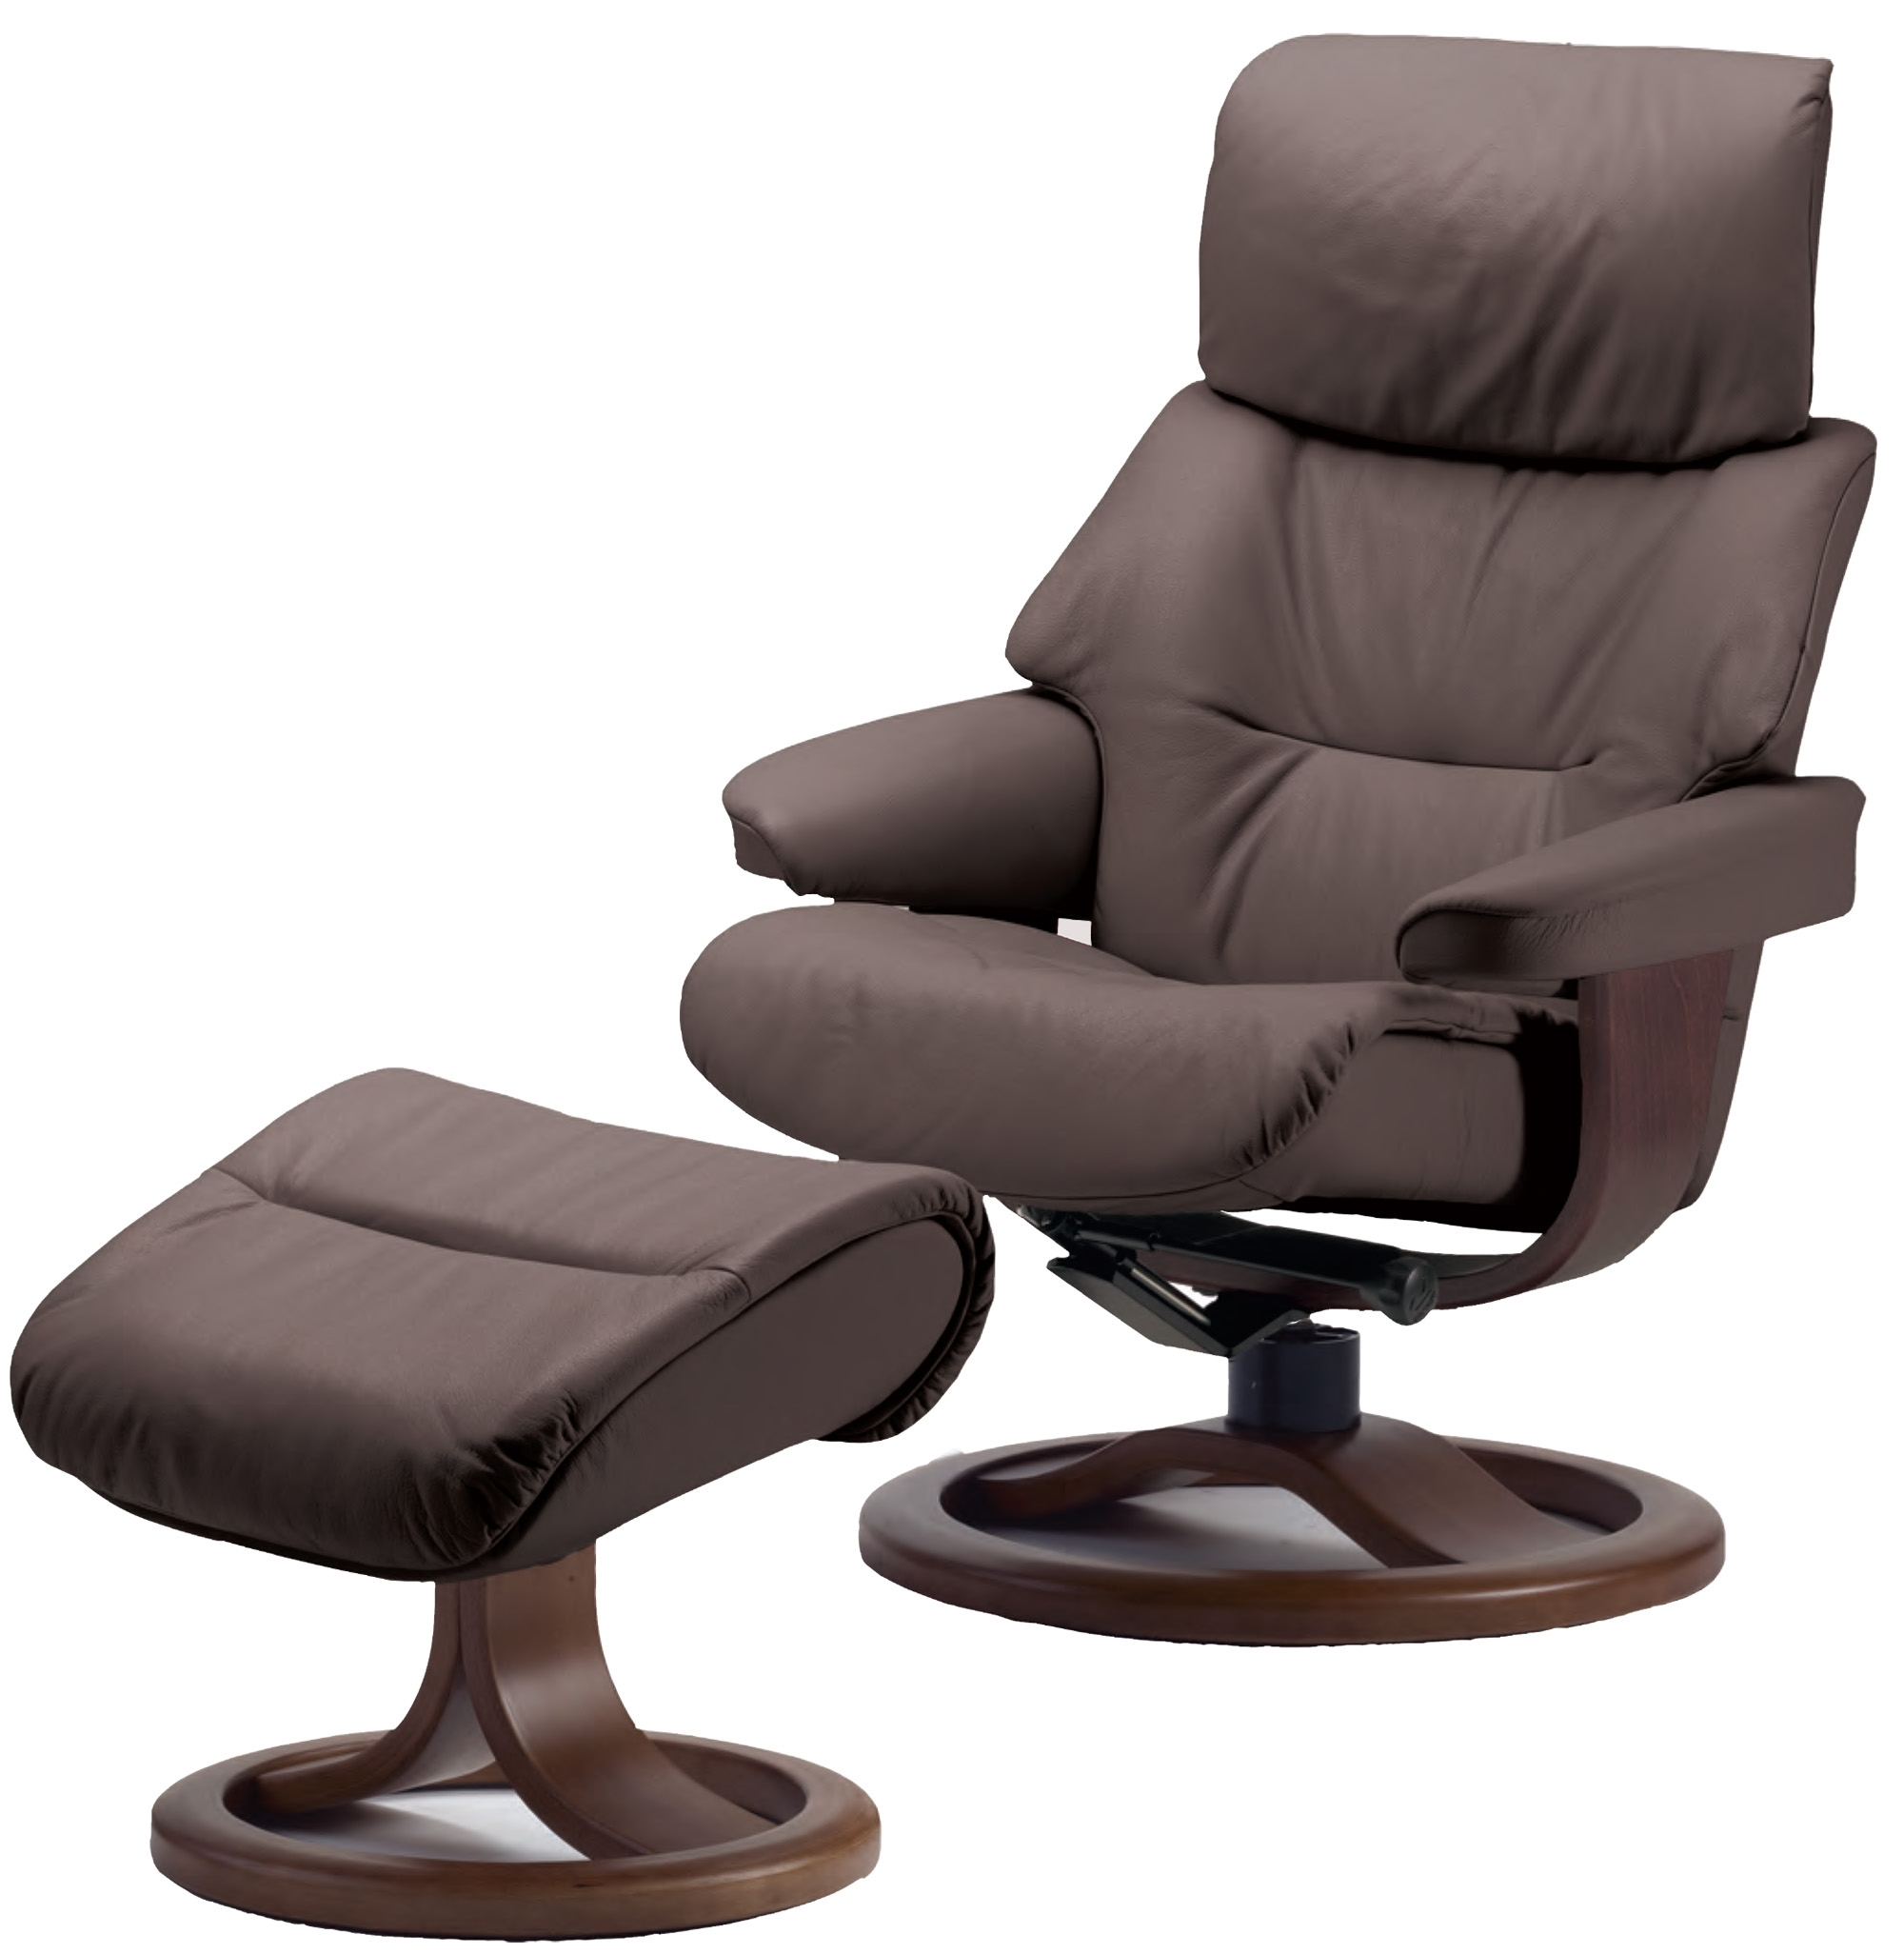 Lounge Chair : Chaise Lounge Chair Best Ergonomic Recliner Chairs With Fashionable Chaise Lounge Computer Chairs (View 9 of 15)